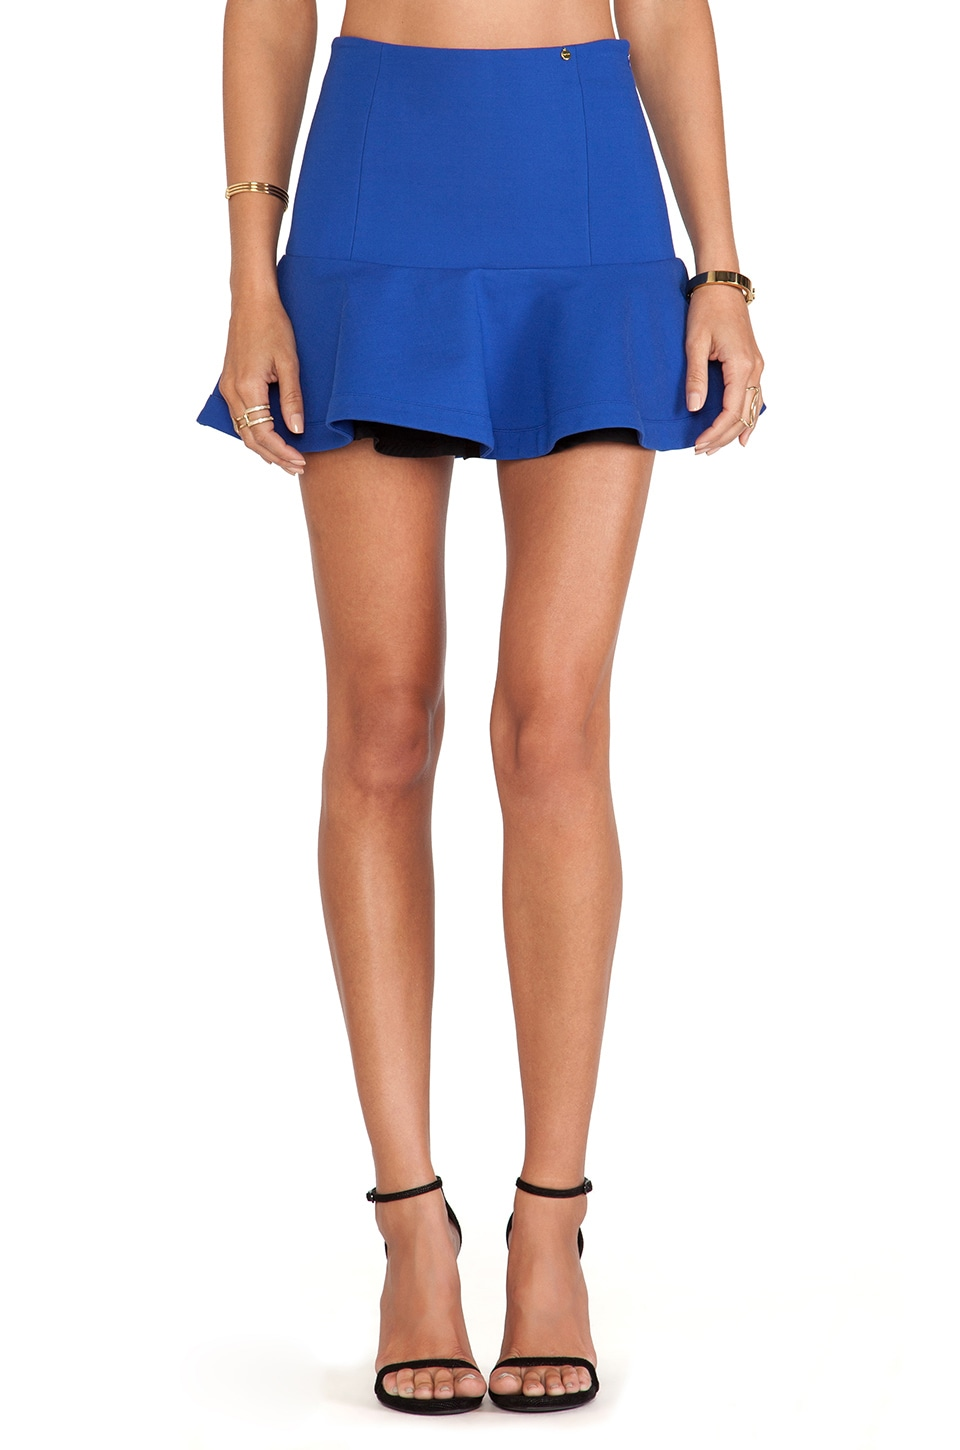 harlyn The Jenny Skirt in Blue